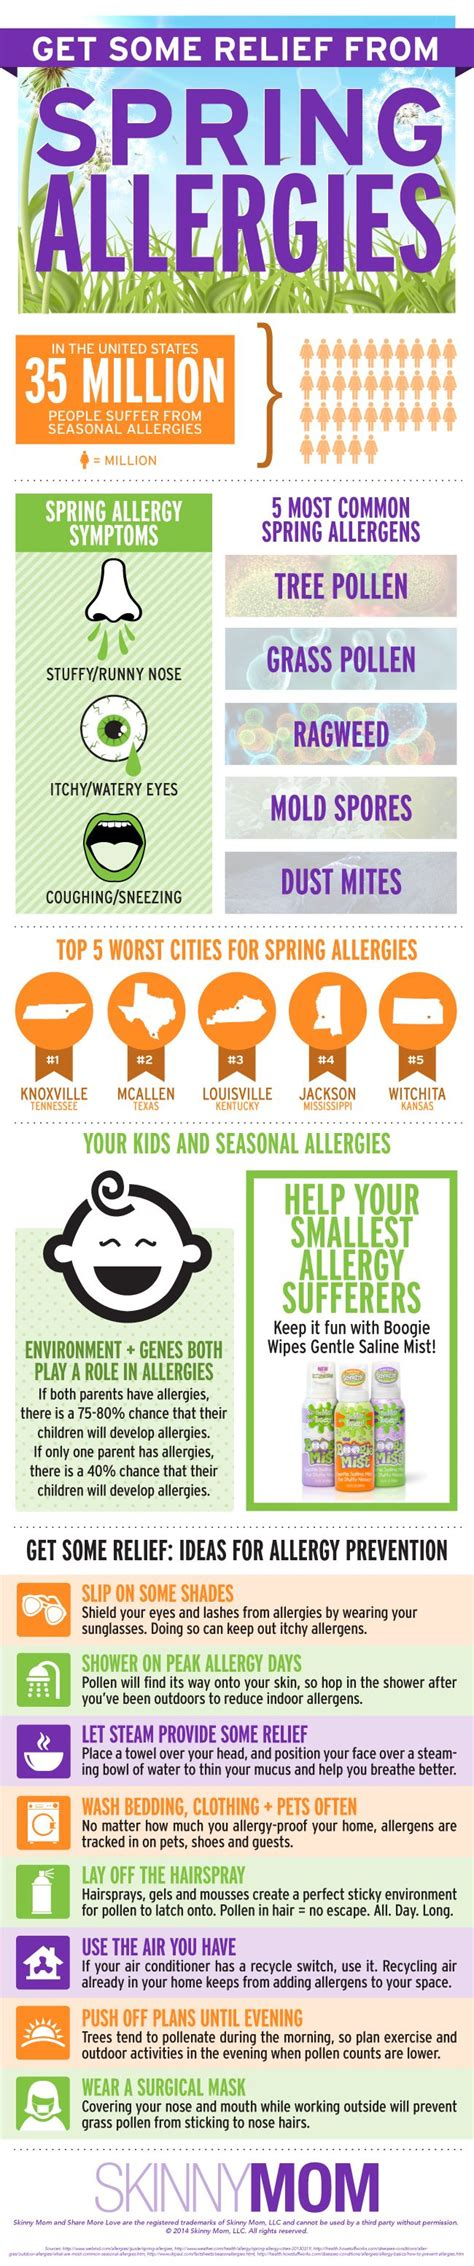 spring tips 10 tips to fight back against spring allergies